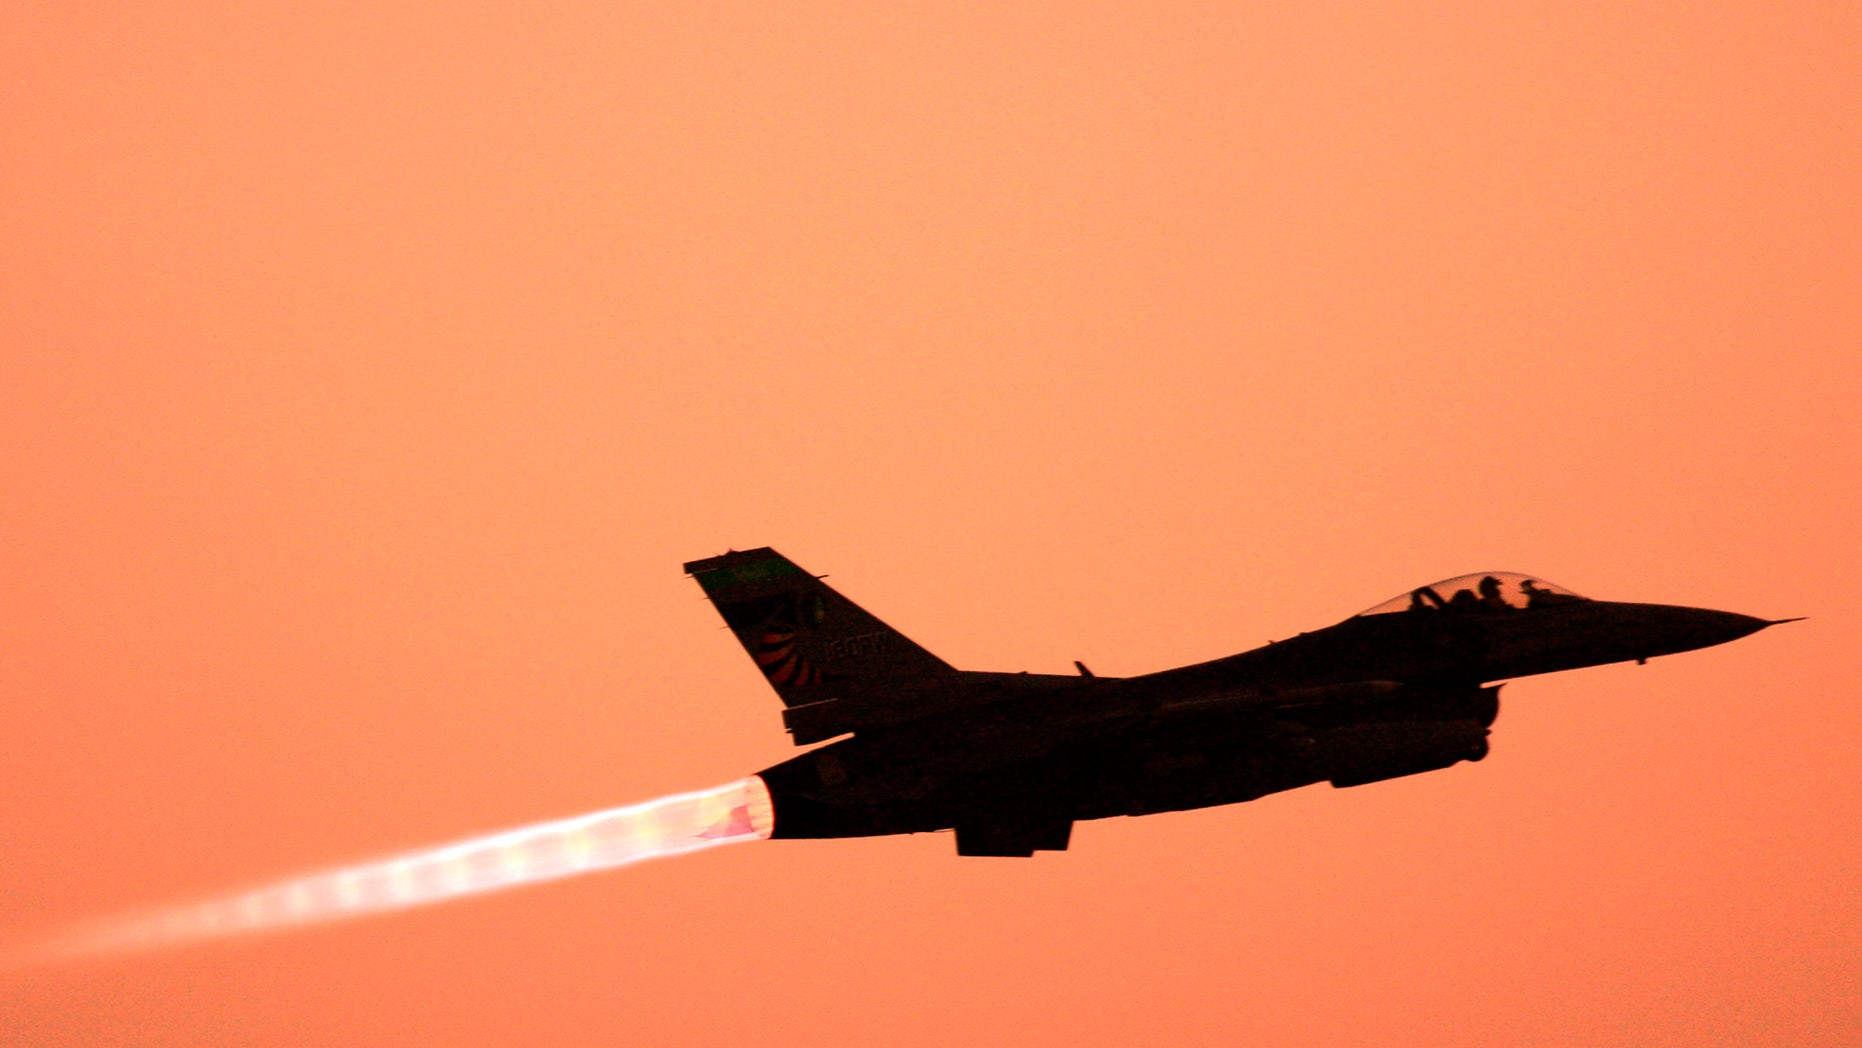 ** ADVANCE FOR SUNDAY, JULY 15 **An F-16 Falcon takes off from Balad Air Base, 50 miles north of Baghdad, Iraq Thursday, June 21, 2007.  (AP Photo/ Maya Alleruzzo)